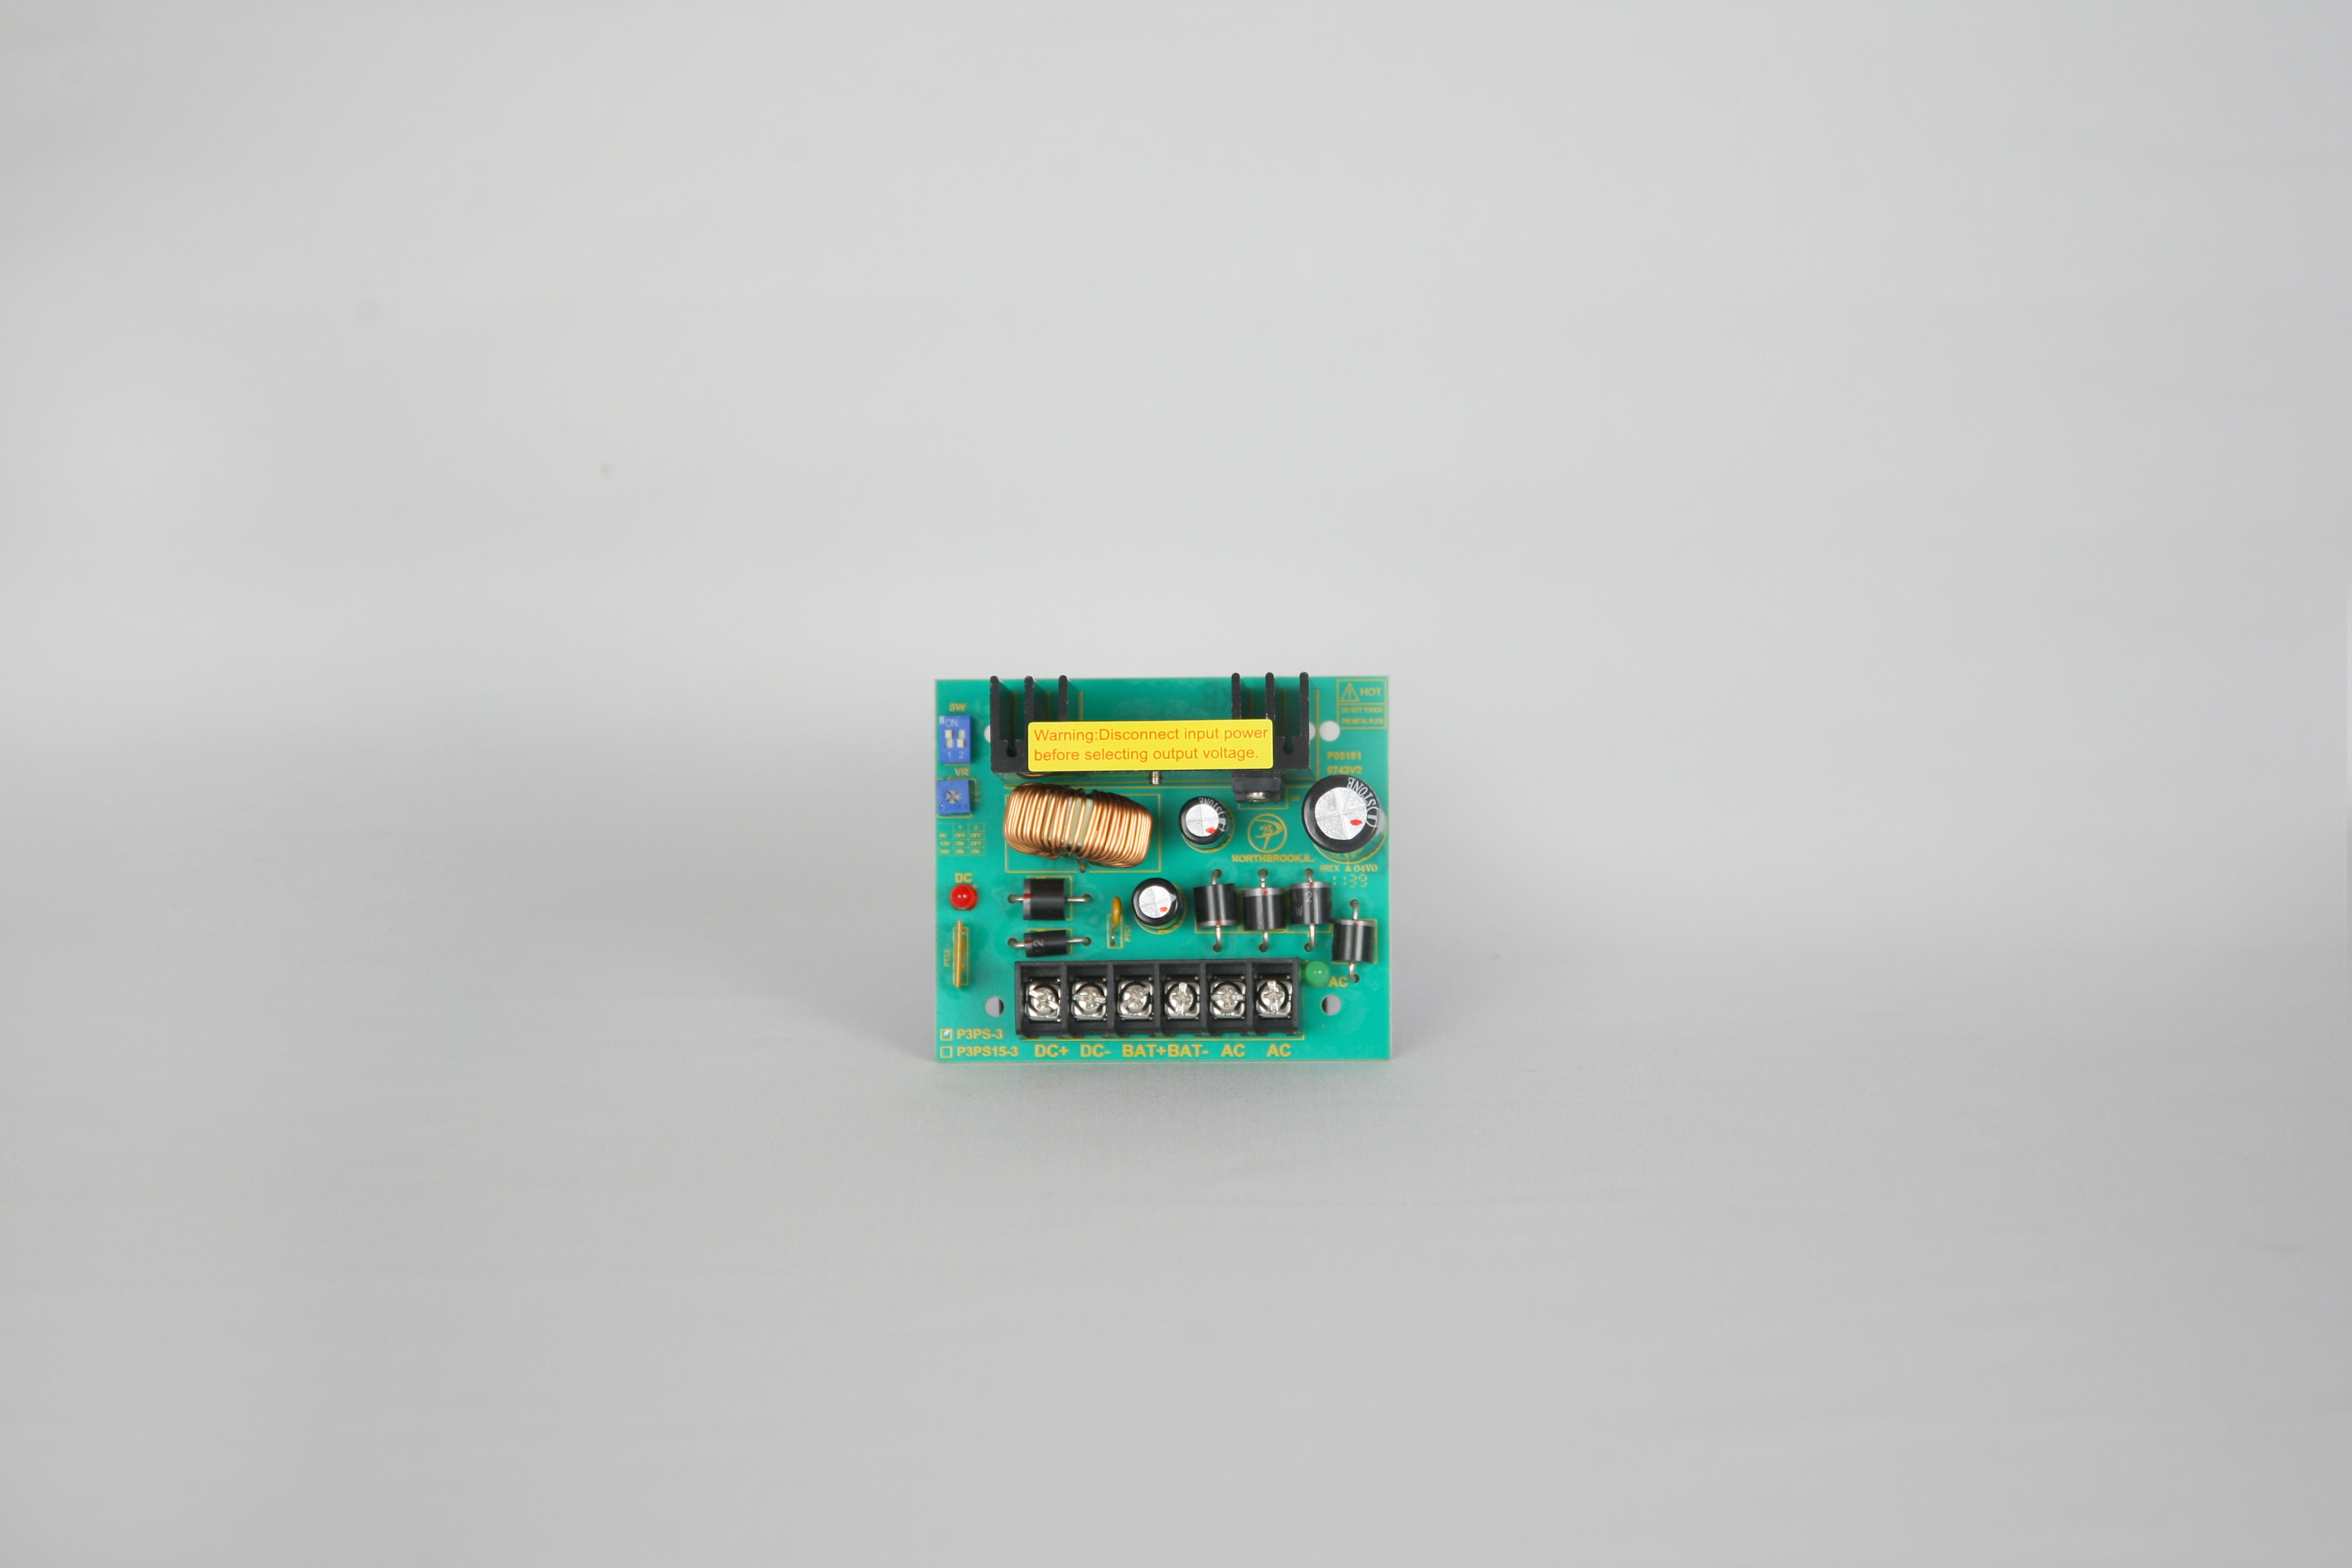 DC Switching Power Supply Board Kit - P3PS-3, SE100 Enclosure, P3PT2450 Plug in Transformer